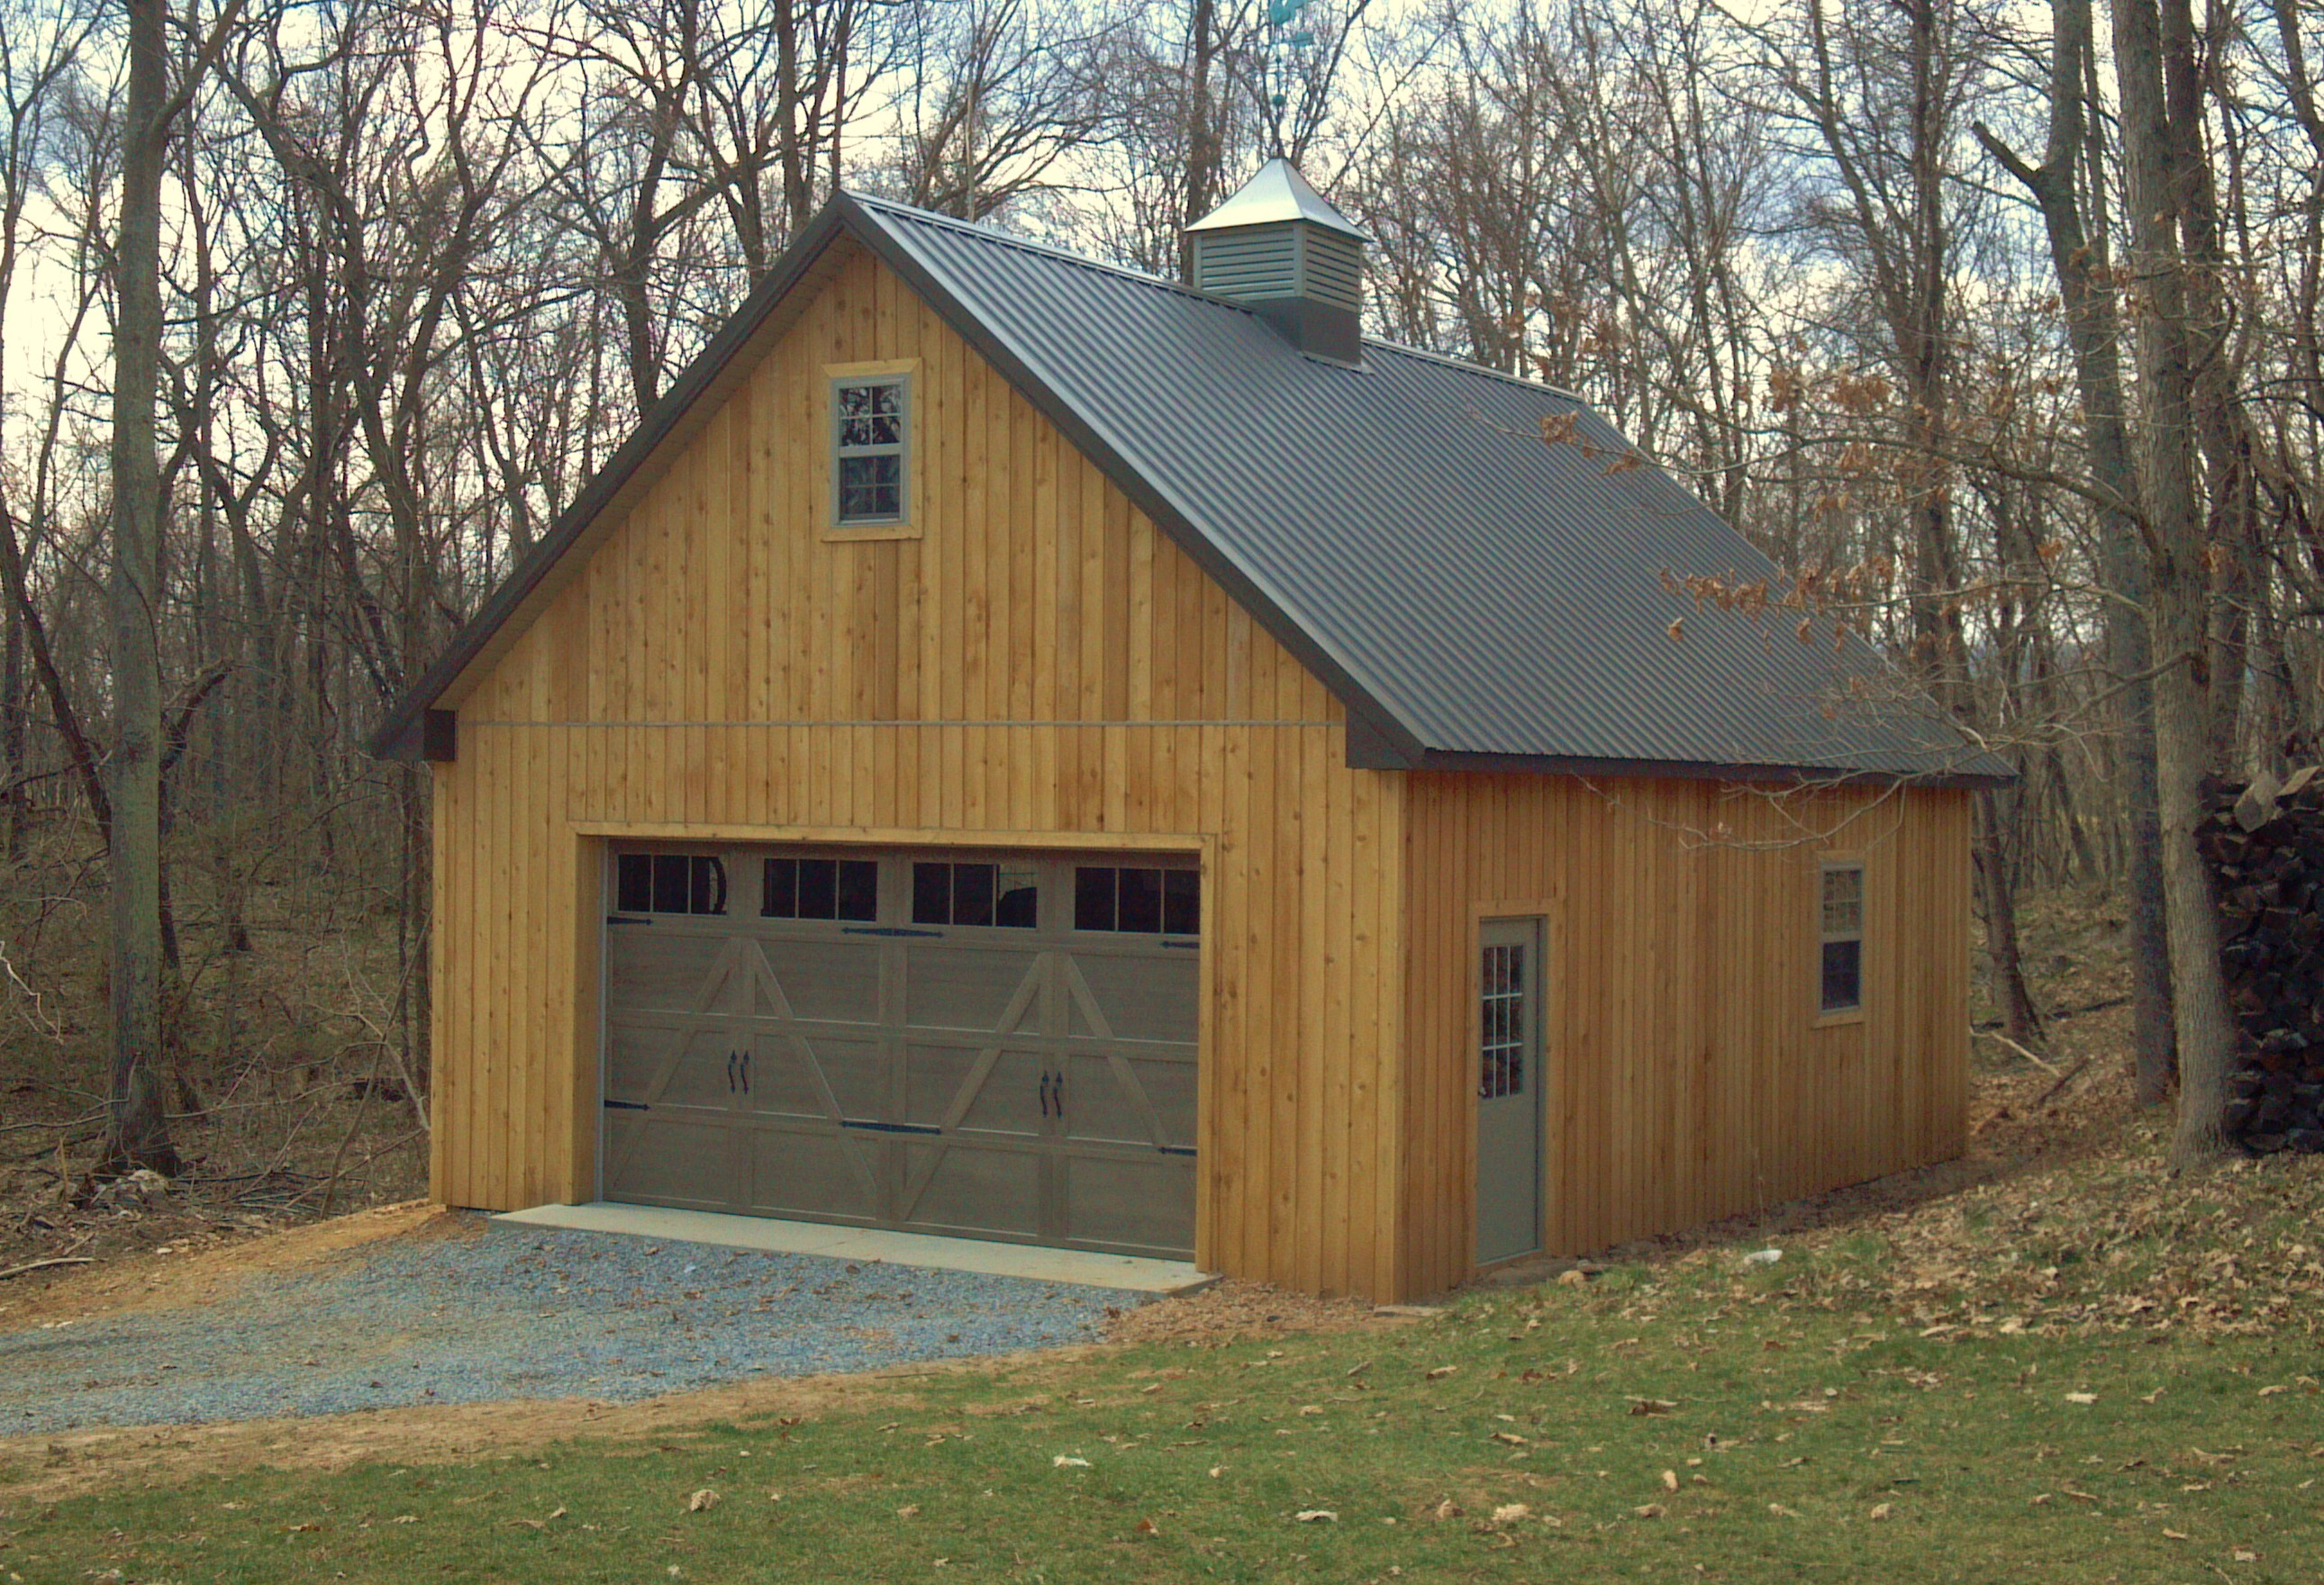 24 x 32 pole barn plans joy studio design gallery best 24 x 28 garage plans free